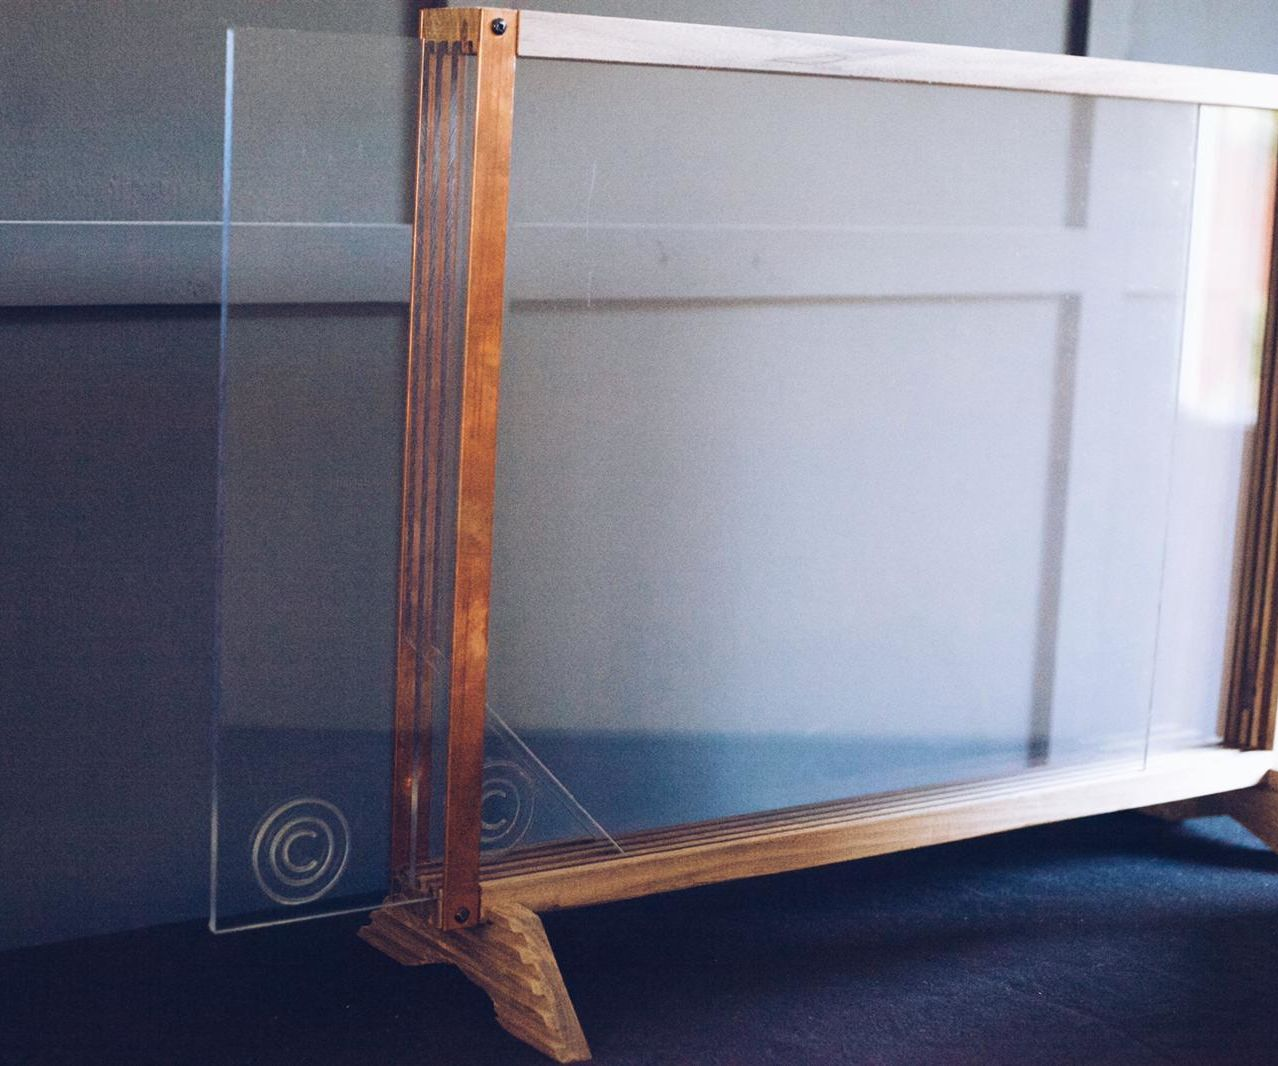 The First Four Layered Drawing Board - I Call It the Overl4y